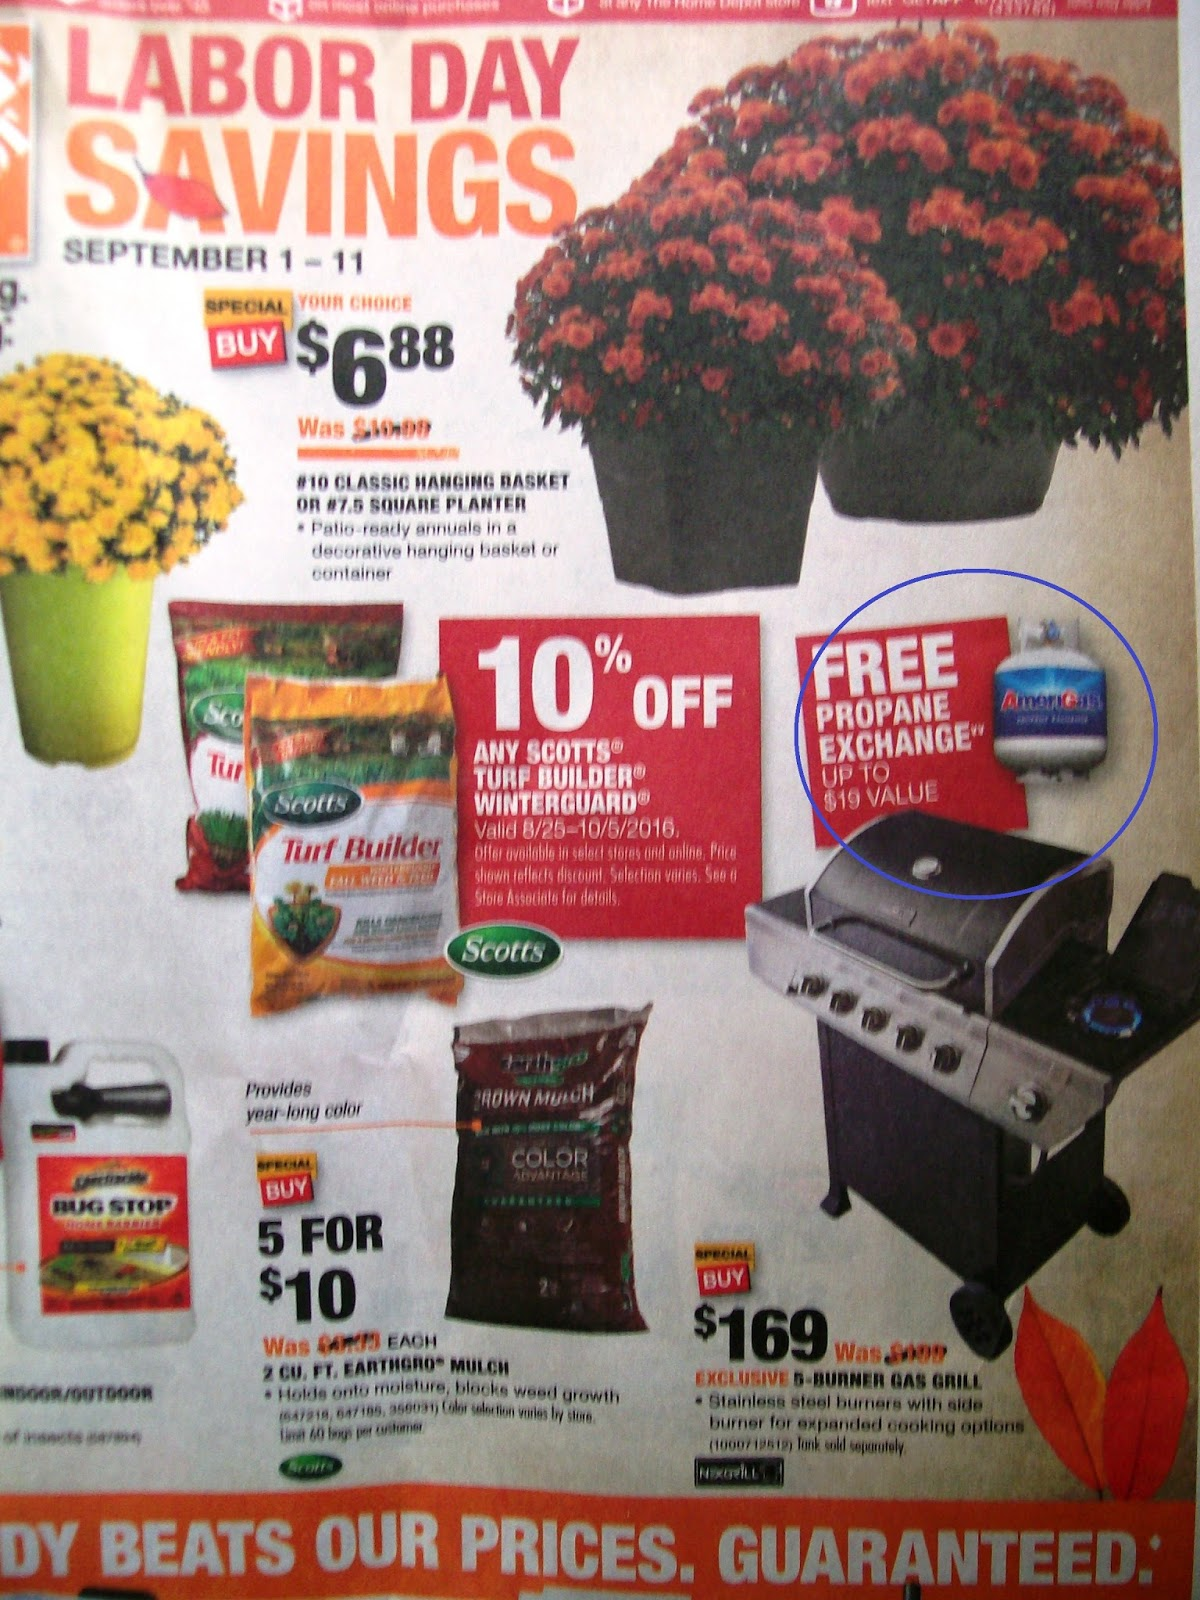 Don't buy this BS Home Depot 'free propane' Labor Day ad